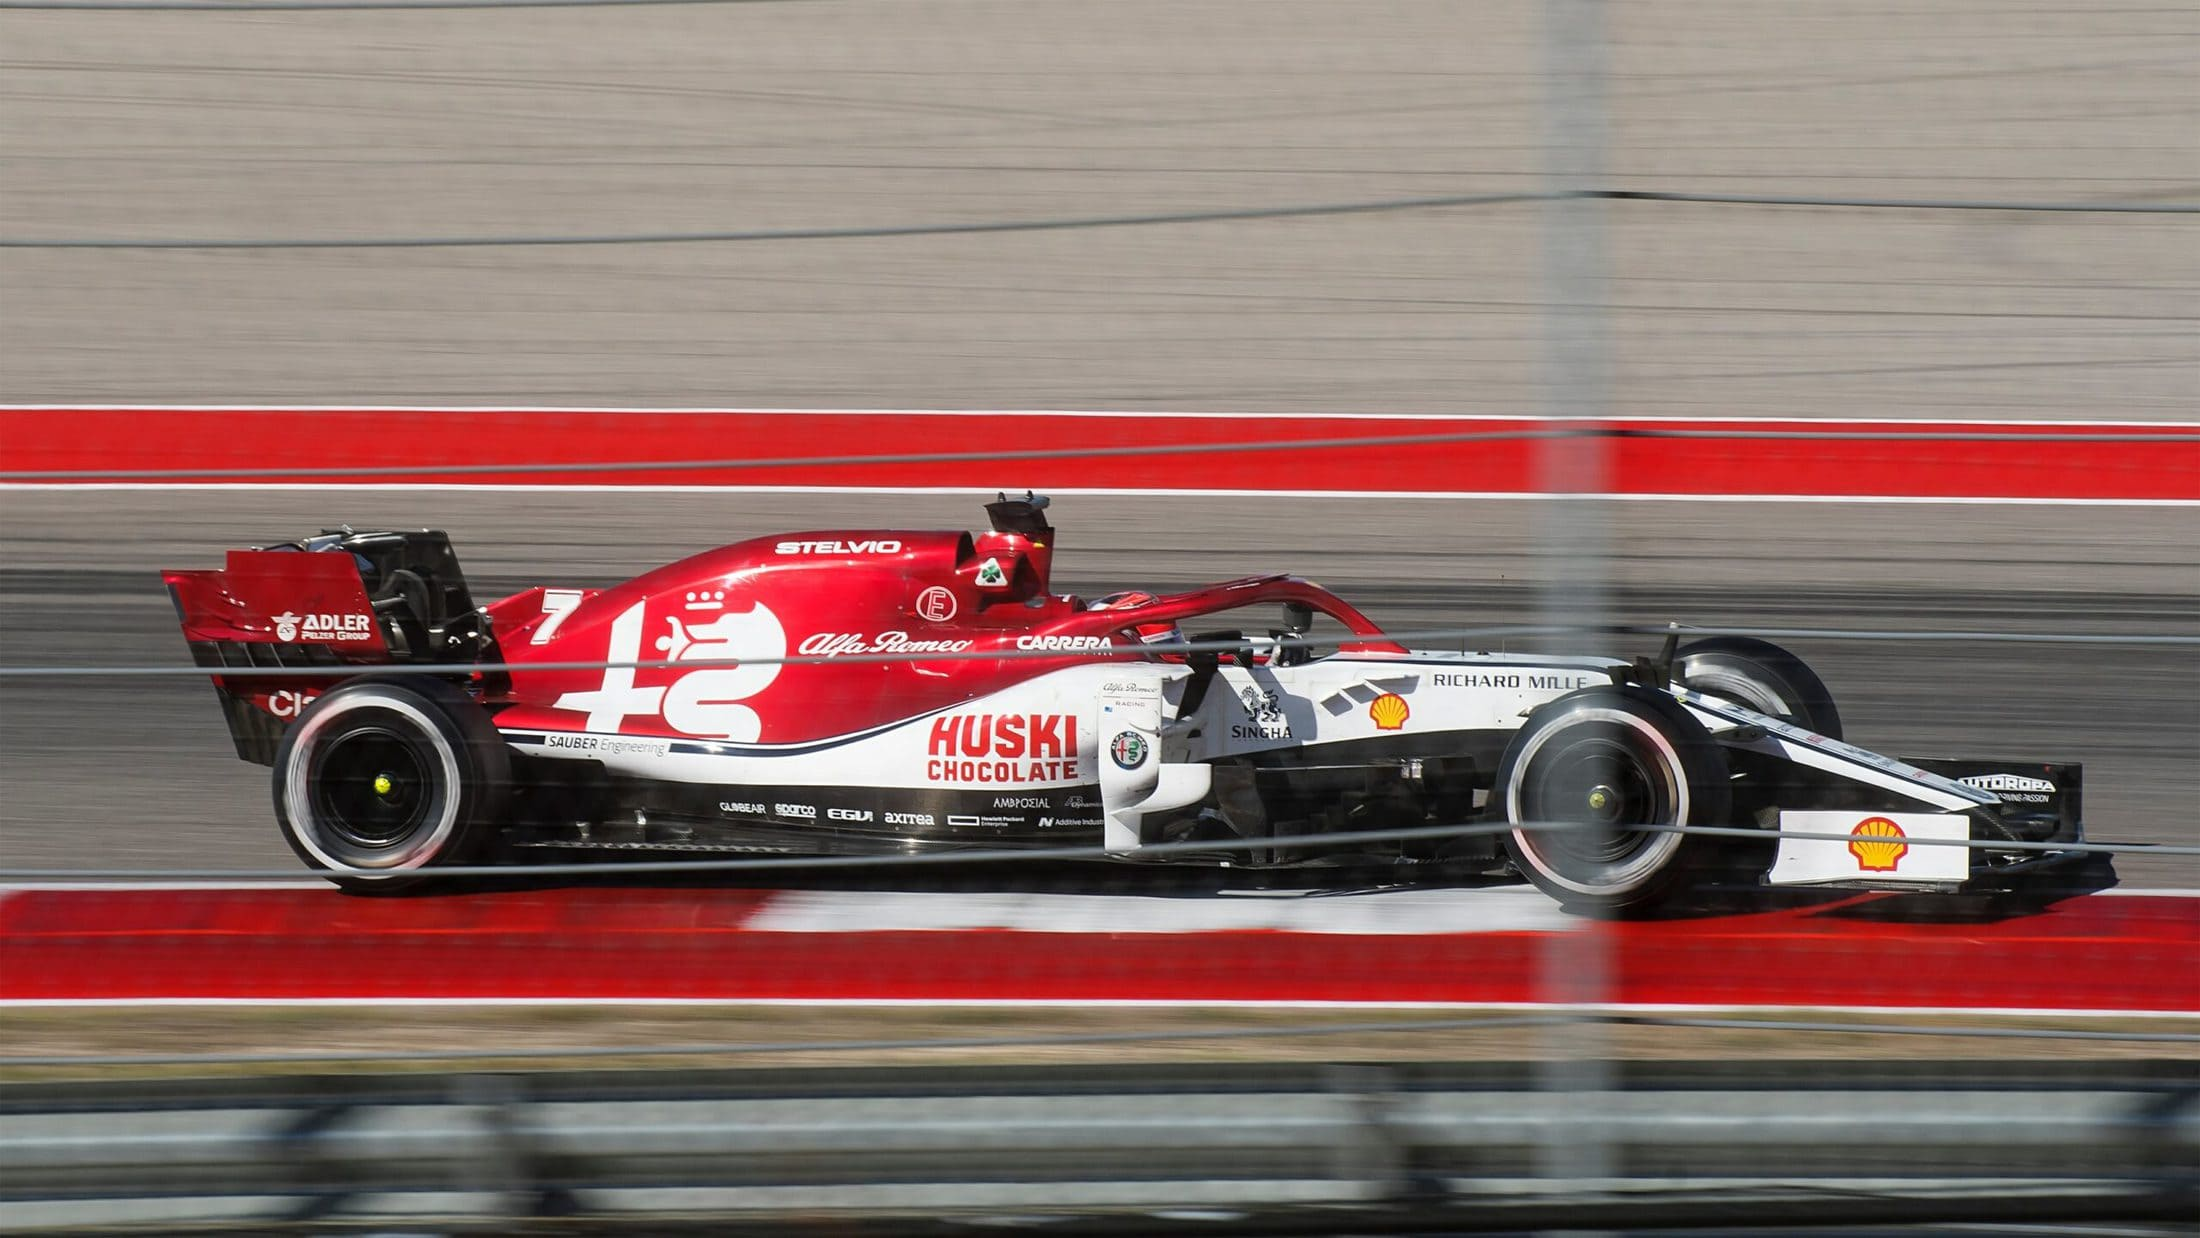 United States Grand Prix 2021 – 5-star Hotel – Circuit of the Americas